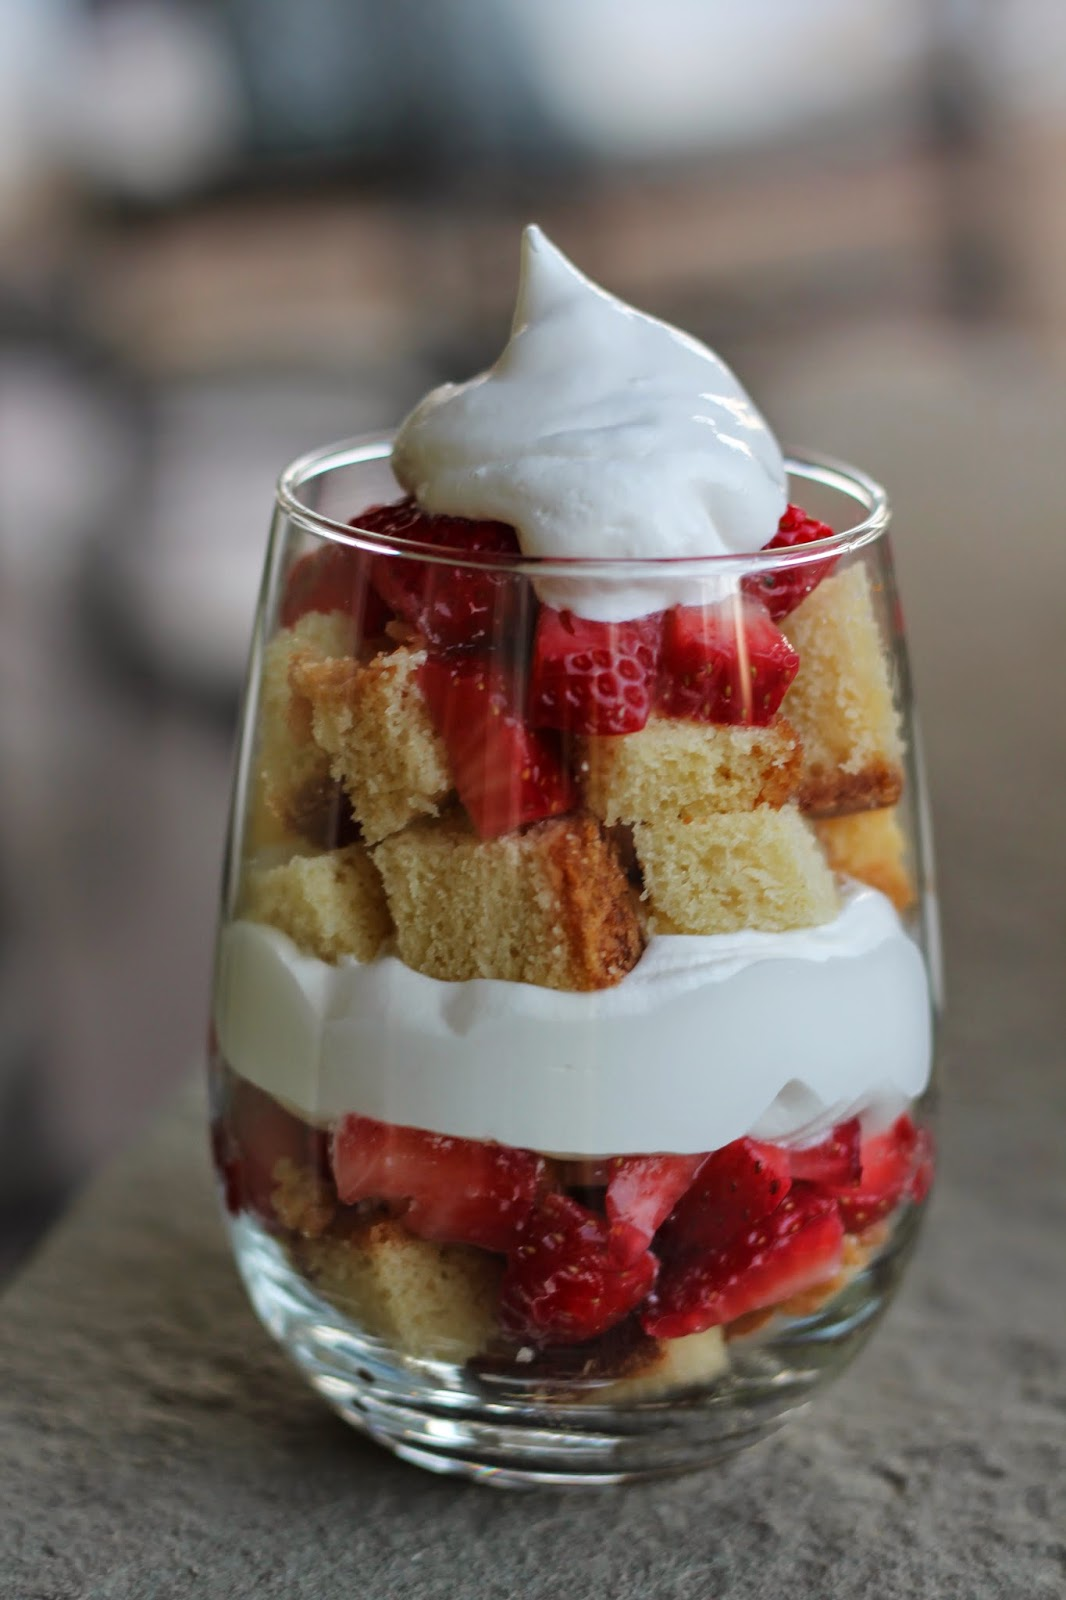 Turbinado Shortcakes with Strawberries and Whipped Cream